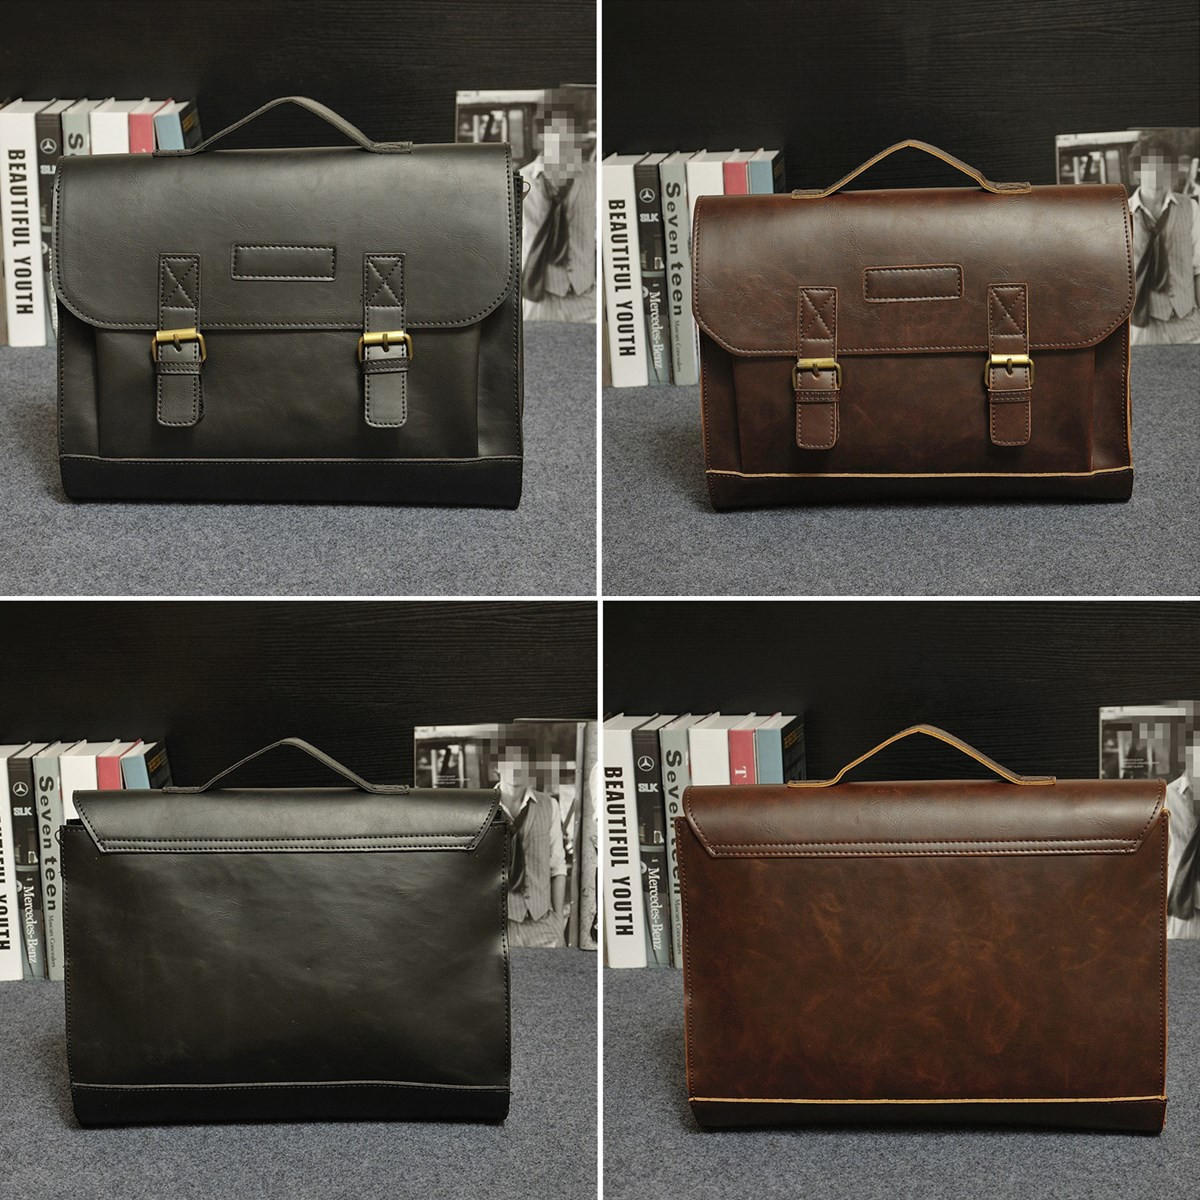 4649592455b6 Retro Men Bag PU Leather Men Handbags Casual Business Laptop Bag Messenger  Bags Office Bag